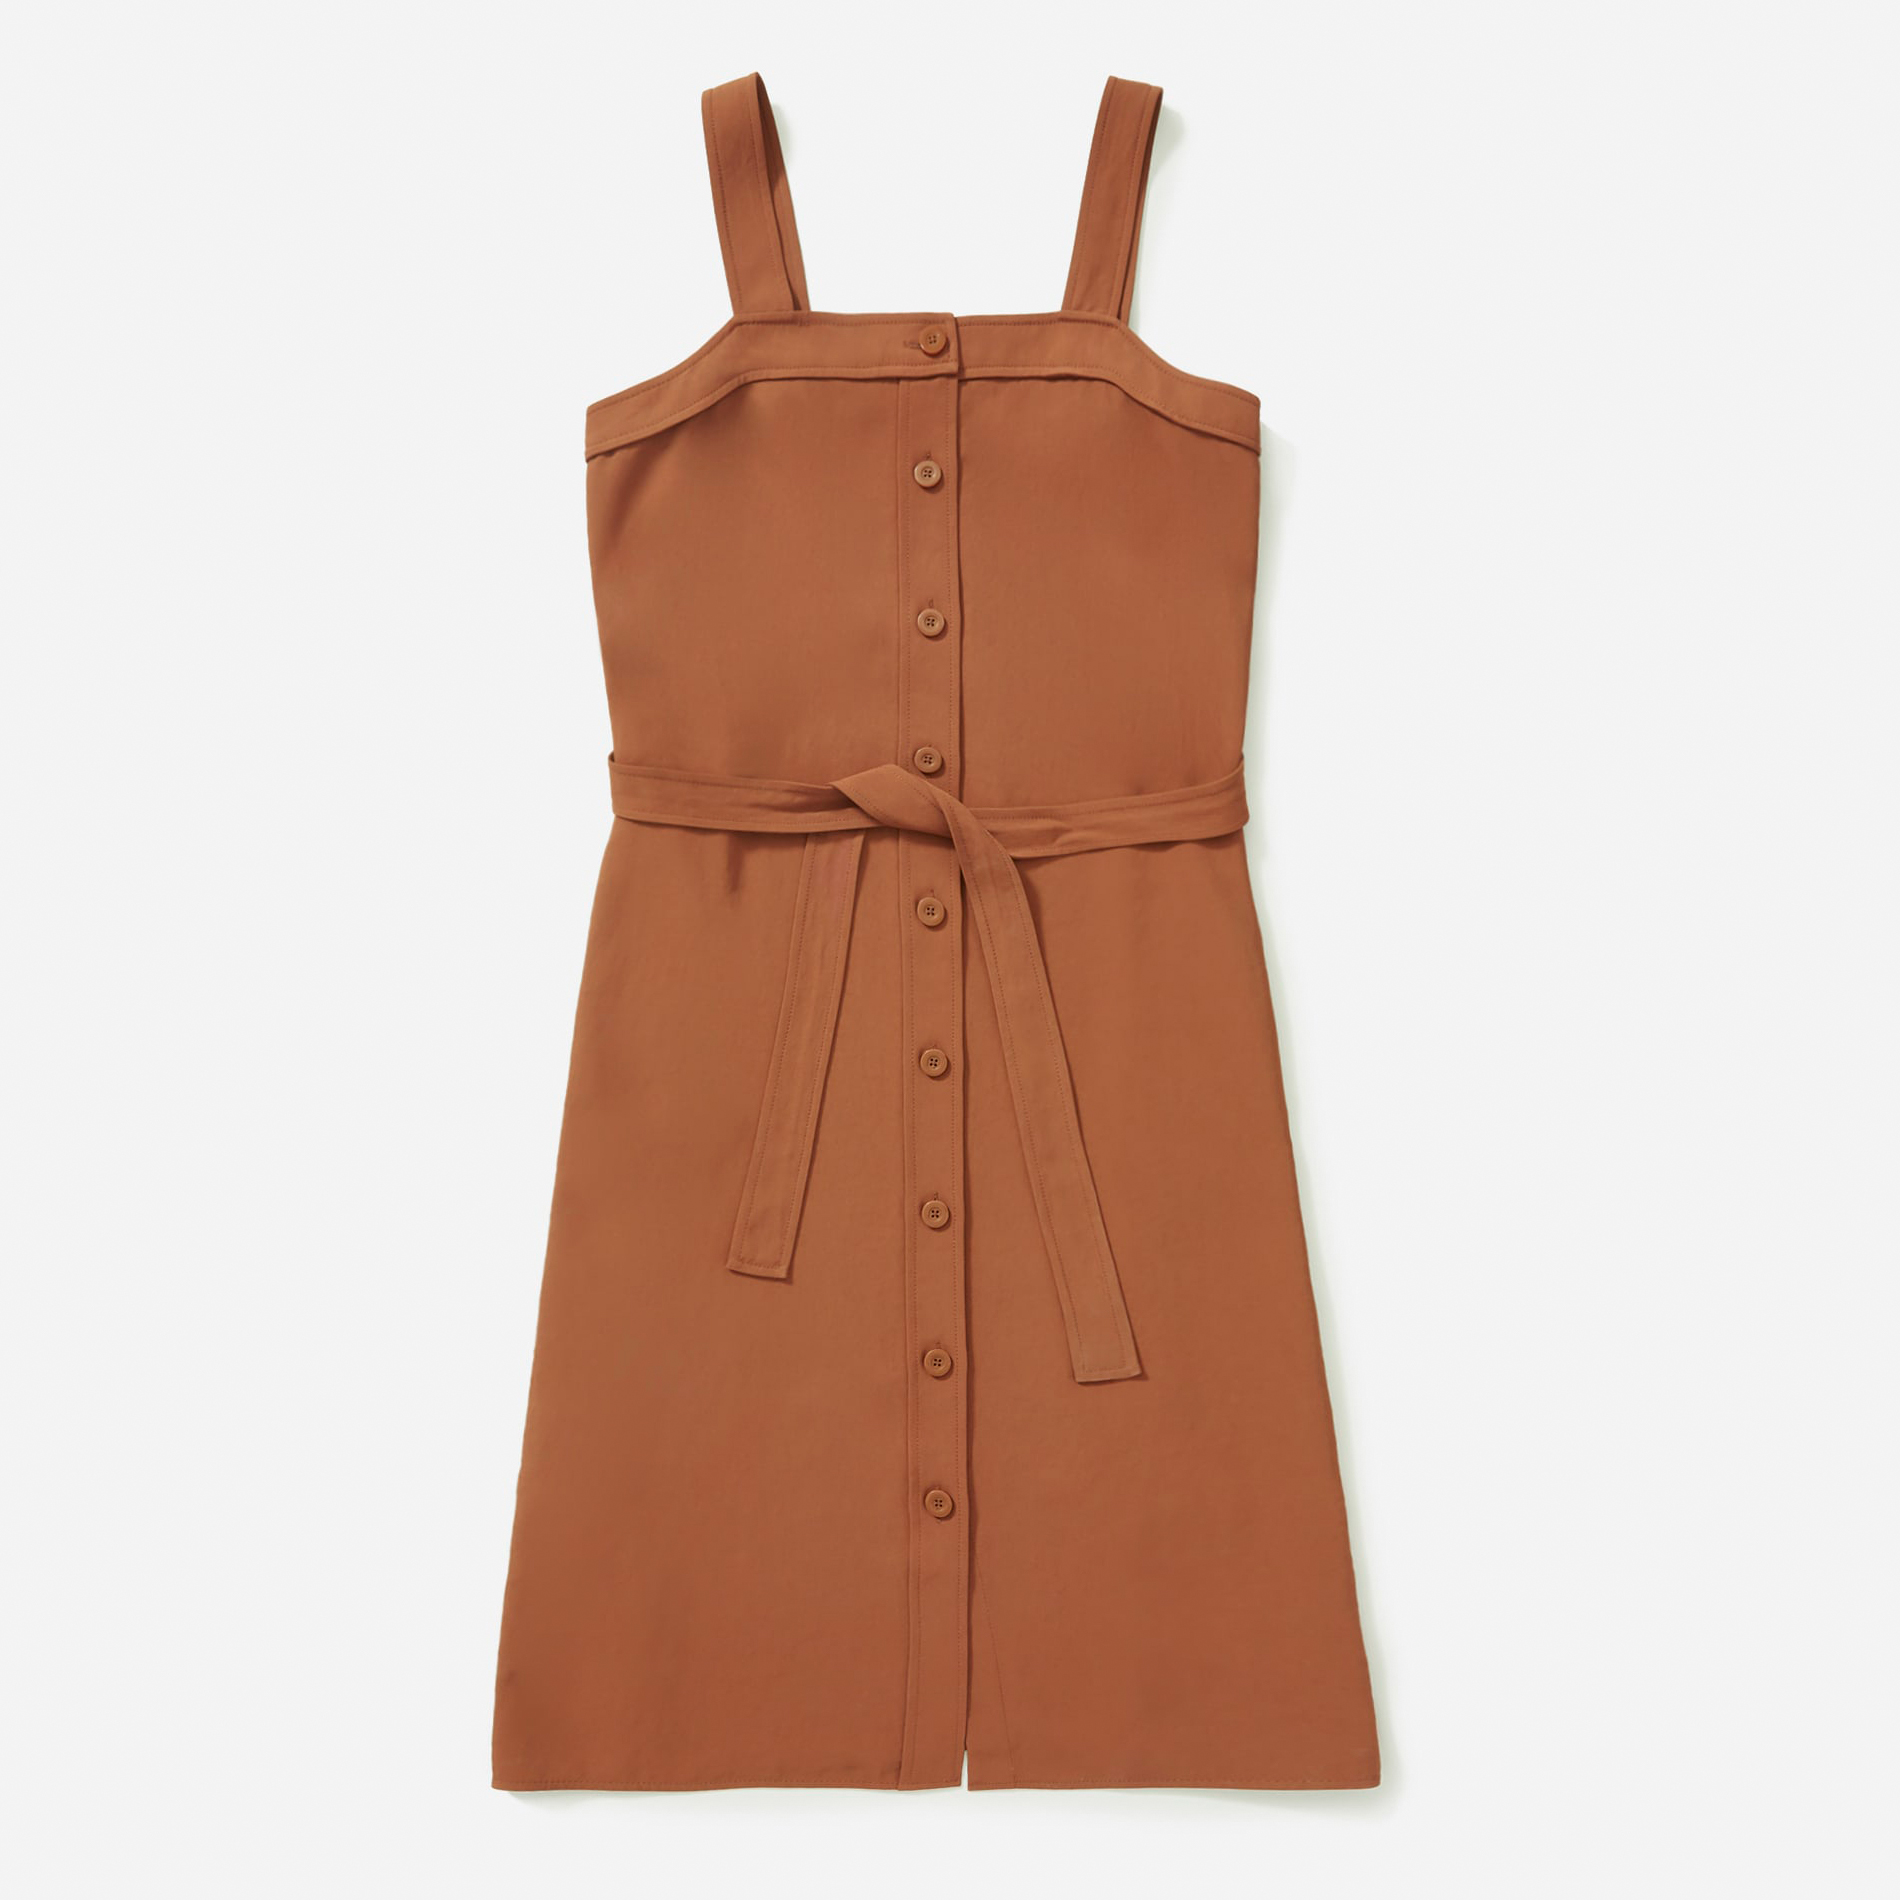 Everlane Japanese GoWeave Picnic Dress